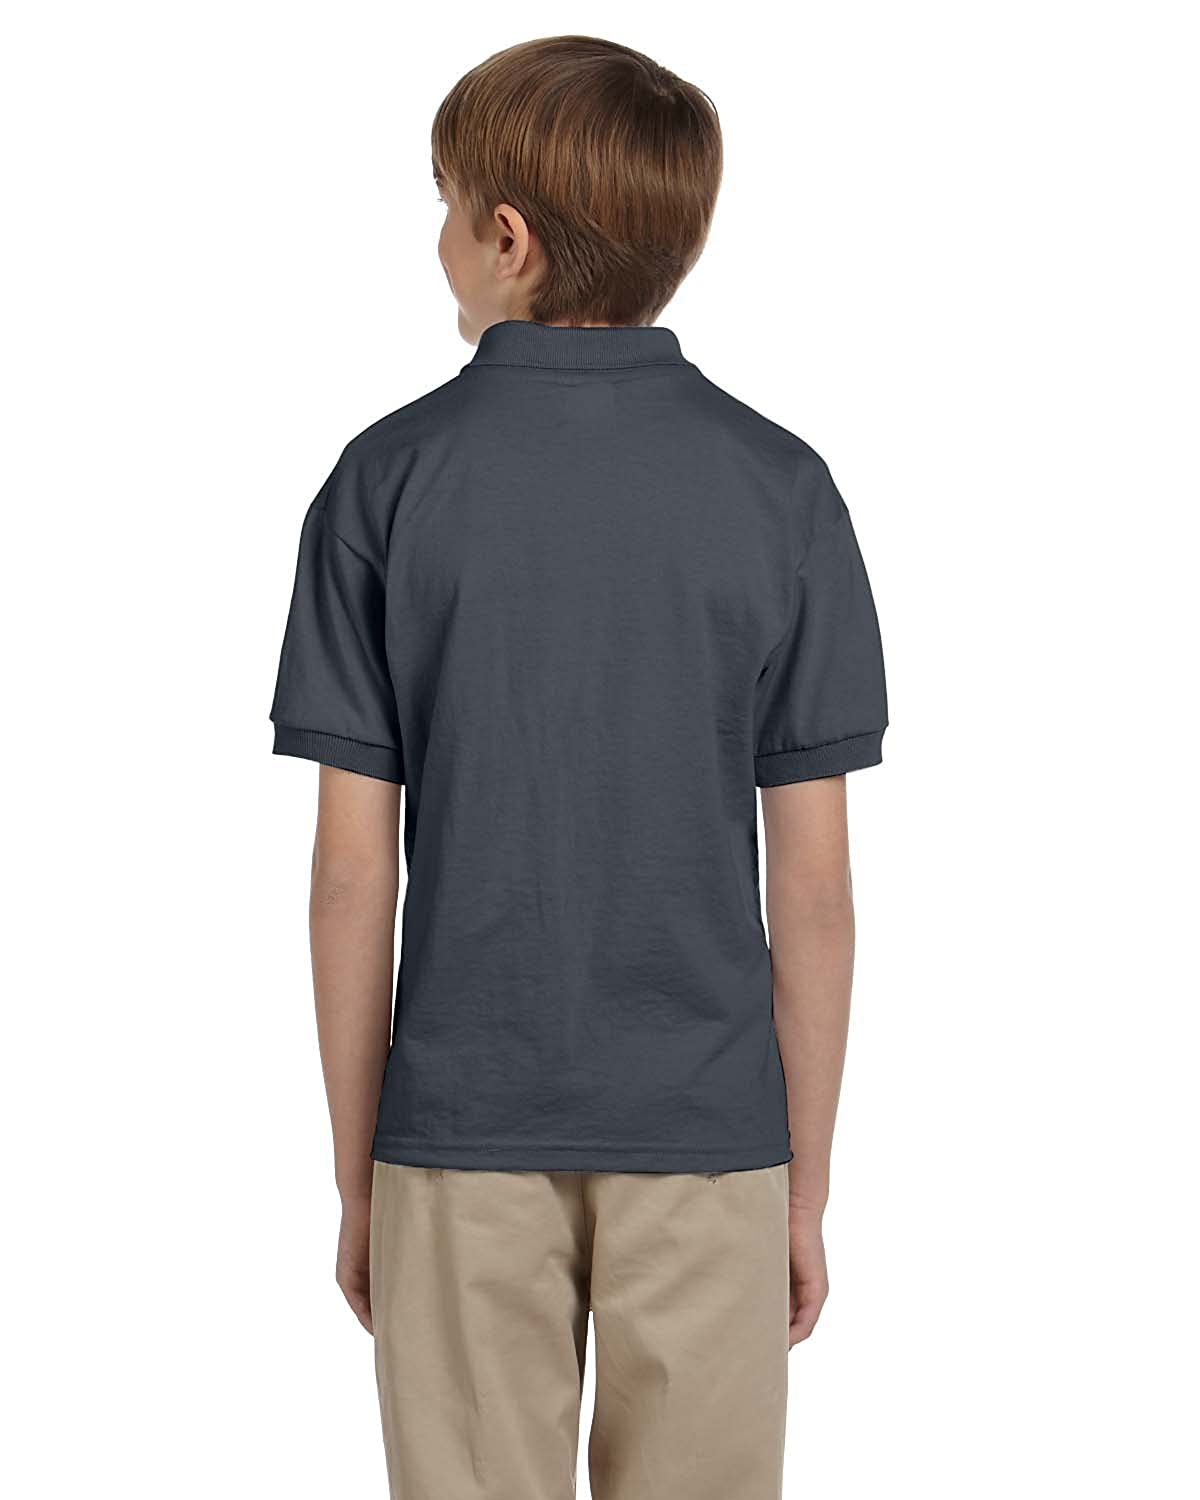 Gildan Boys 5.6 oz DryBlend 50//50 Jersey Polo G880B -Dark Heath -M-12PK